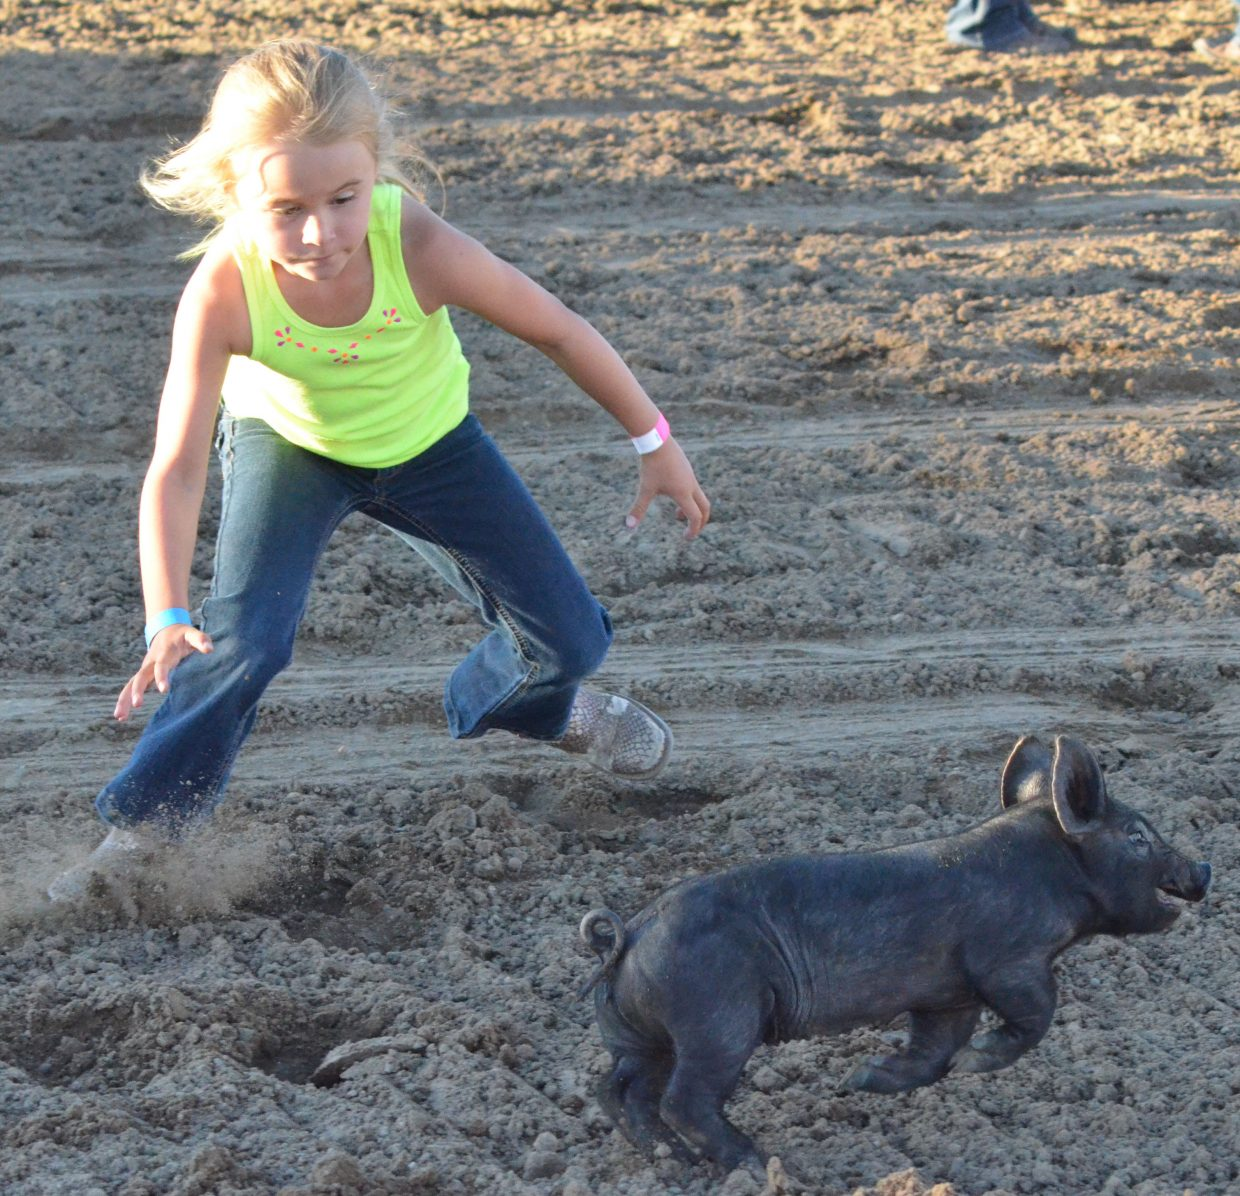 Izzy Shaffer darts after one of the pigs up for grabs during the 5- to 7-year-old age division of the Catch-a-Pig contest Friday night at Moffat County Fairgrounds.